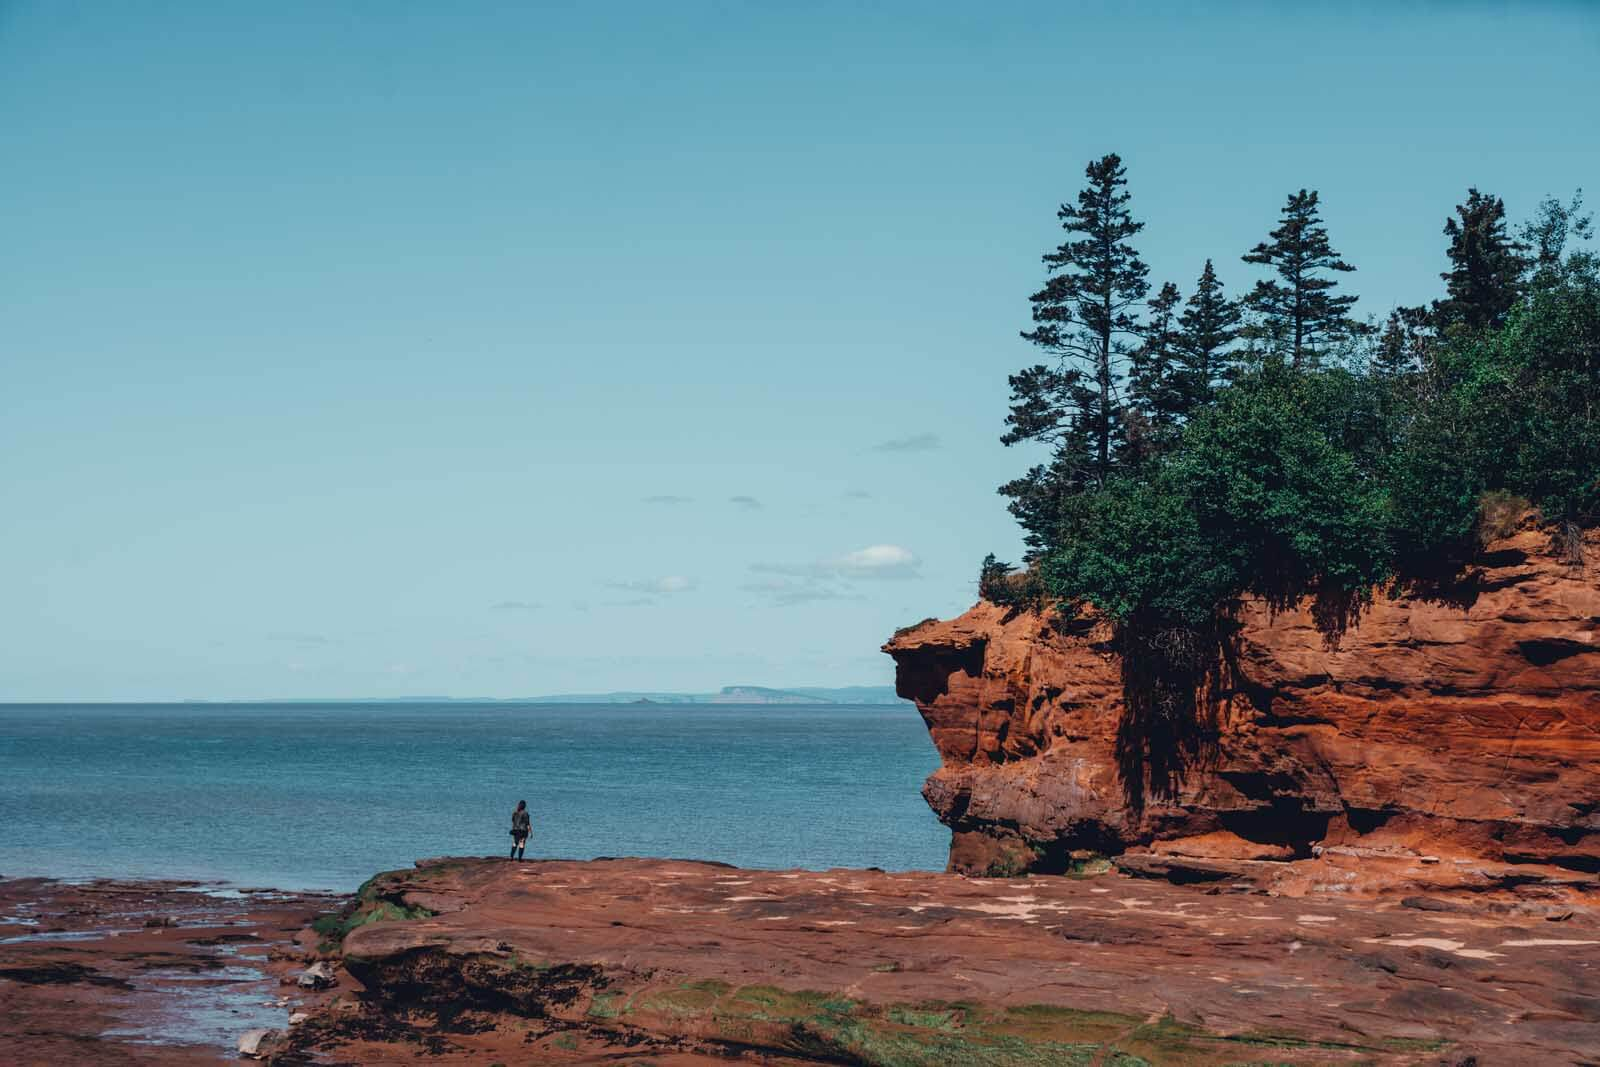 Megan standing on the rocks at Bay of Fundy at low tide